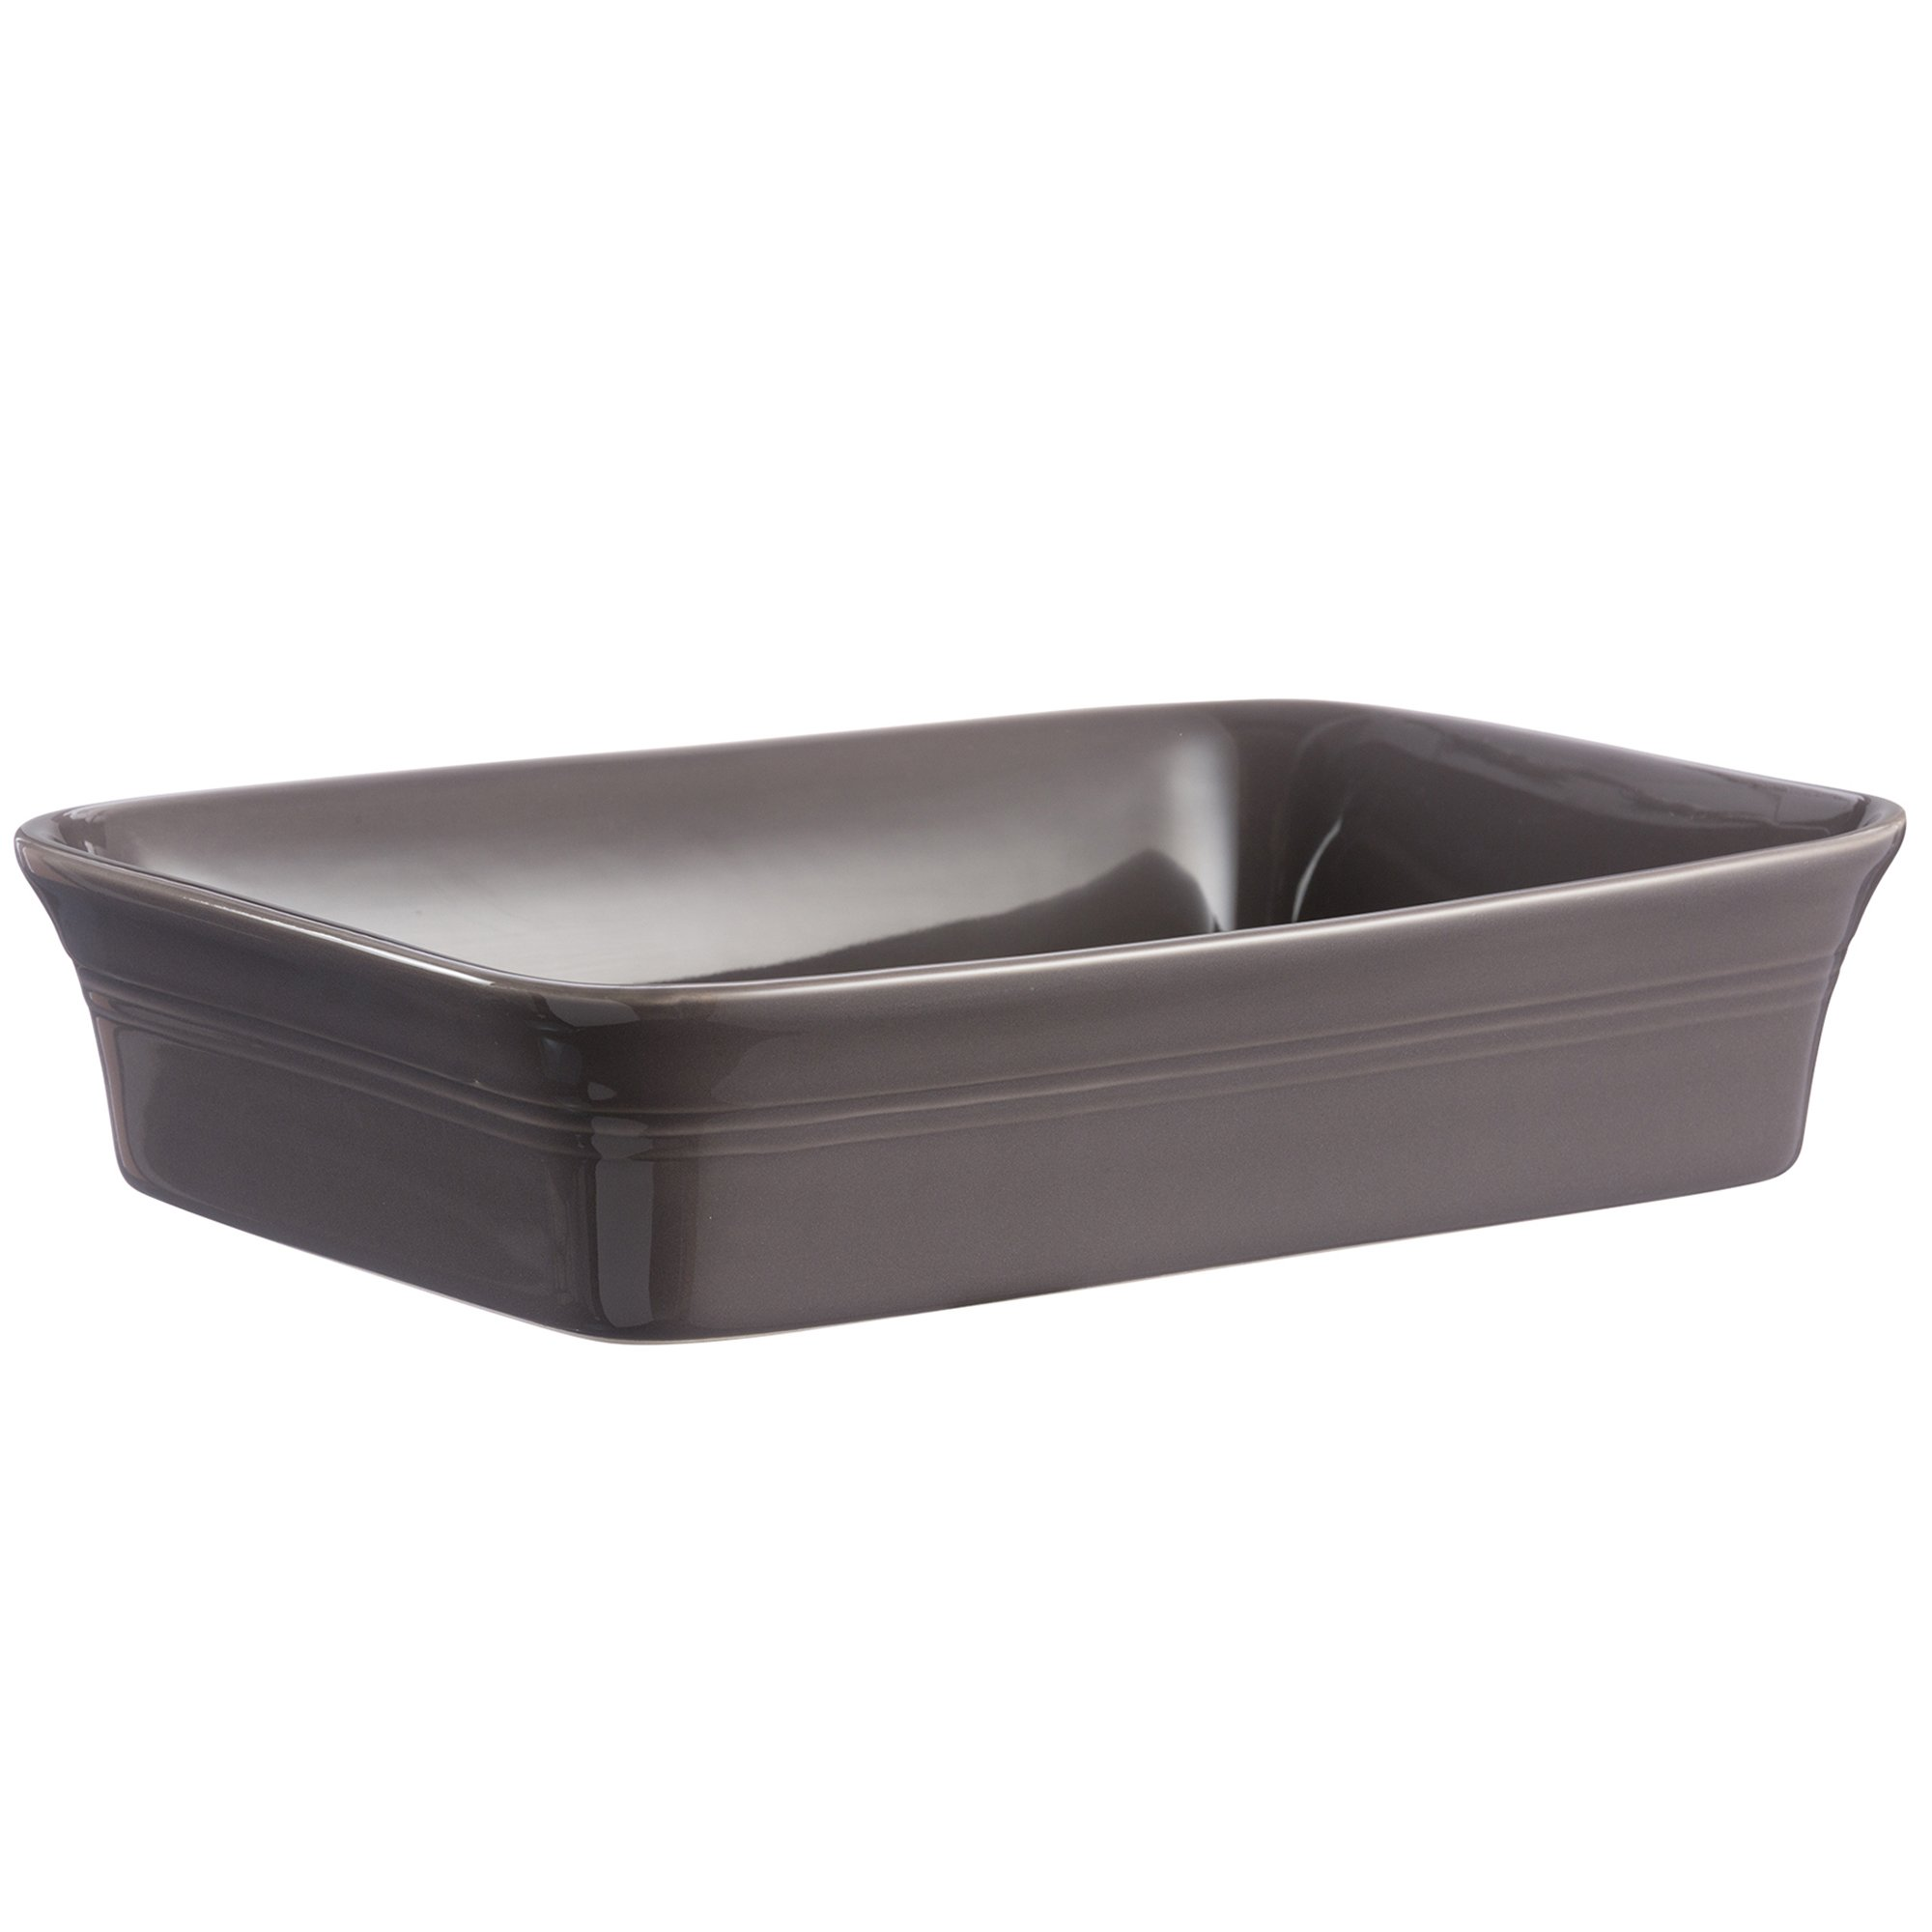 Mason Cash Classic Kitchen Rectangular Baker, Durable Stoneware Is Dishwasher, Oven, Microwave and Freezer Safe, Versatile Size Holds 100-Fluid Ounces,12-1/4'' x 10'' x 2-3/4'', Dark Gray